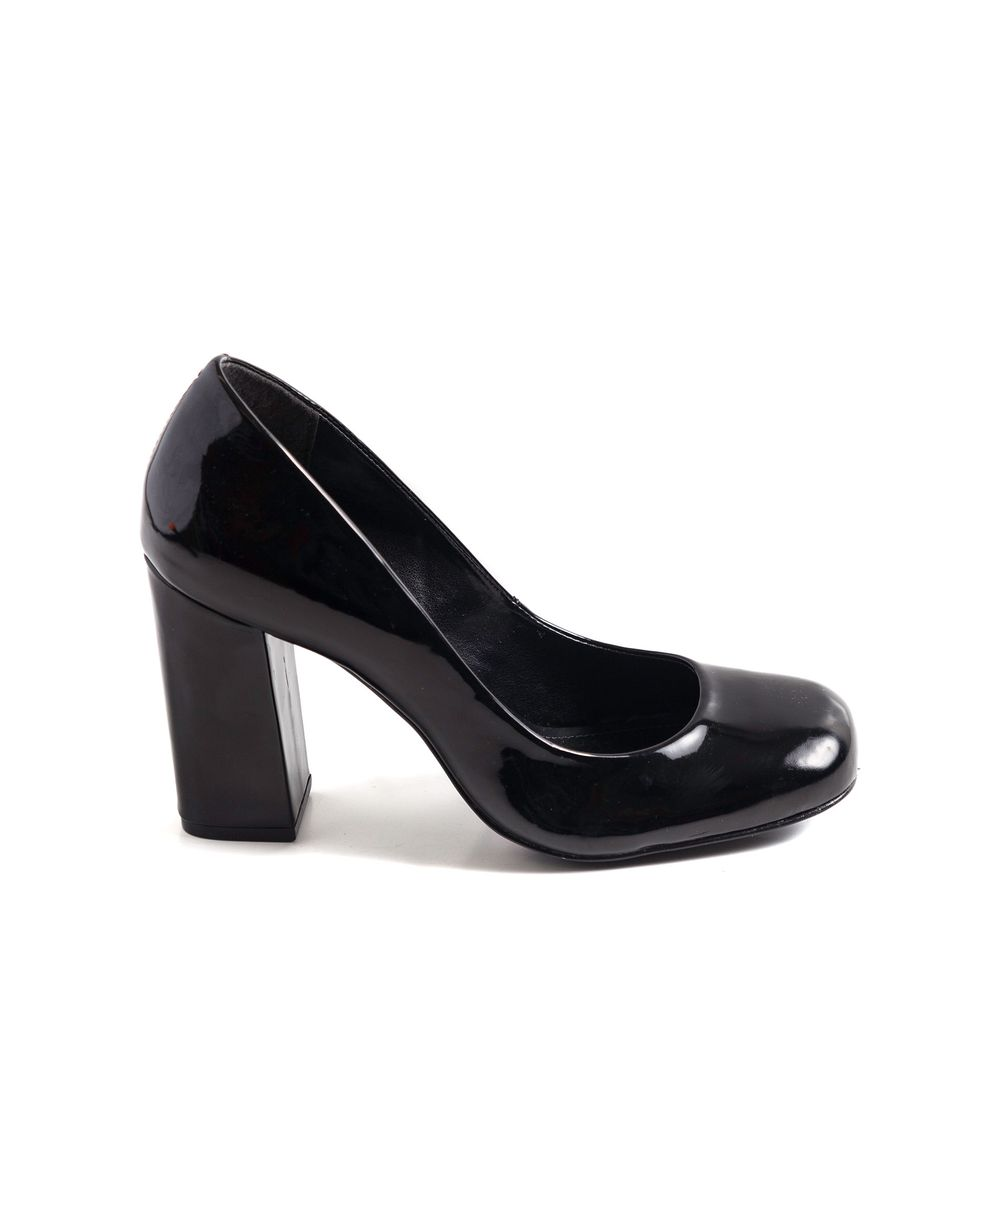 MY-SHOES-SCARPIN-BONECA-PRETO-70450002.